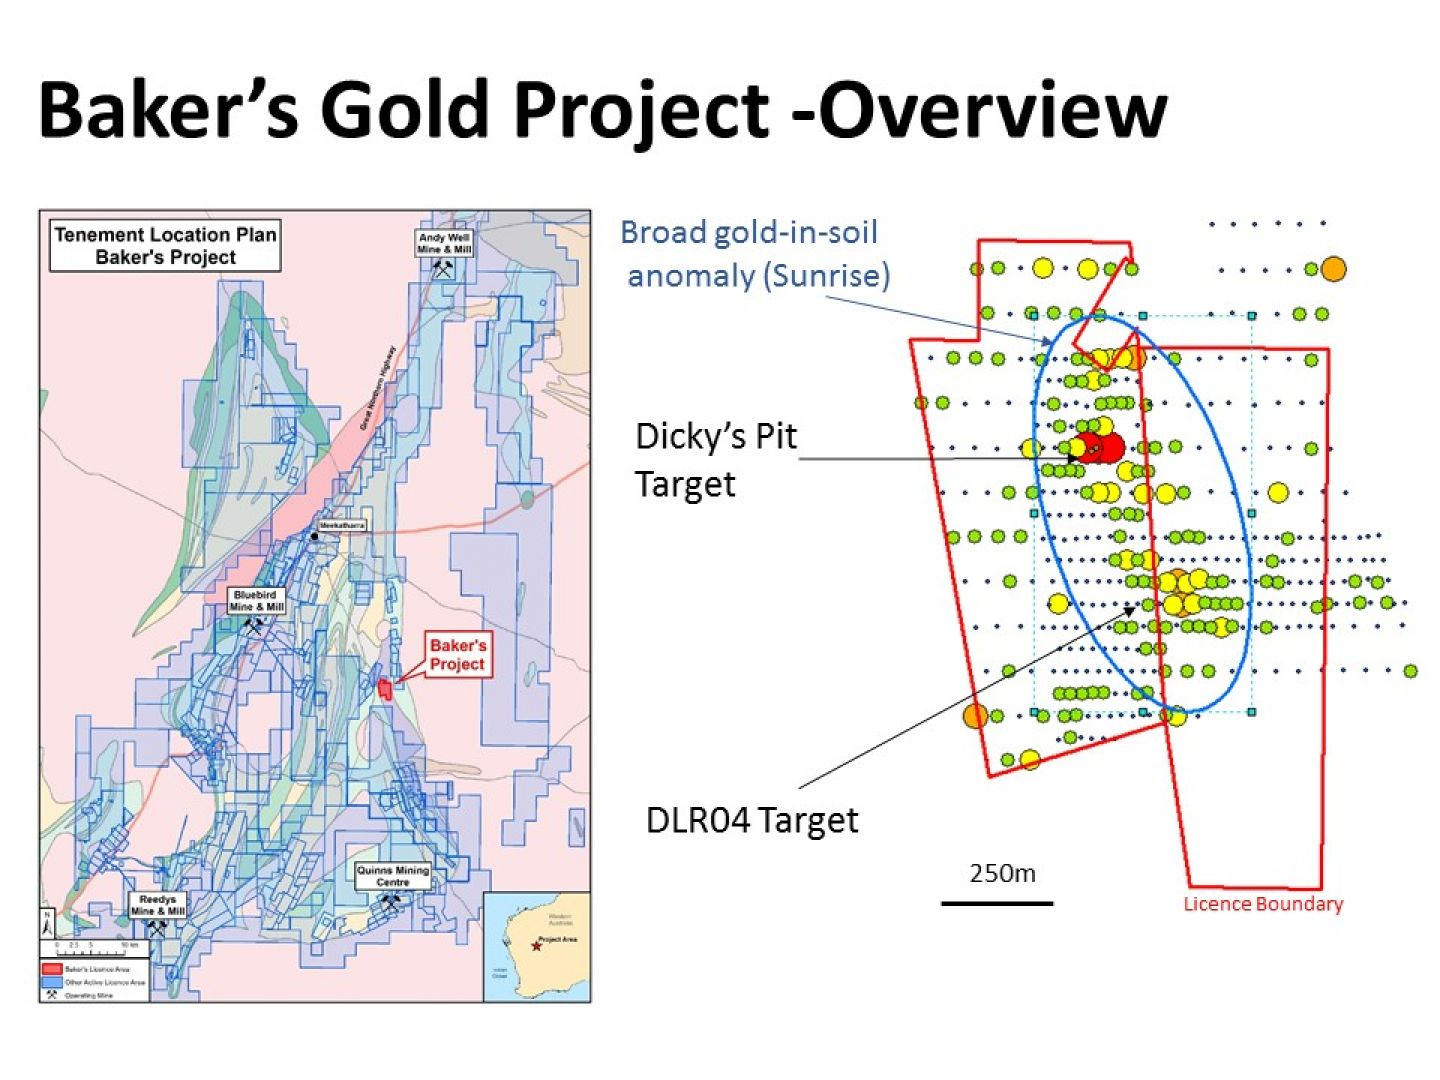 Baker's Gold Project Overview